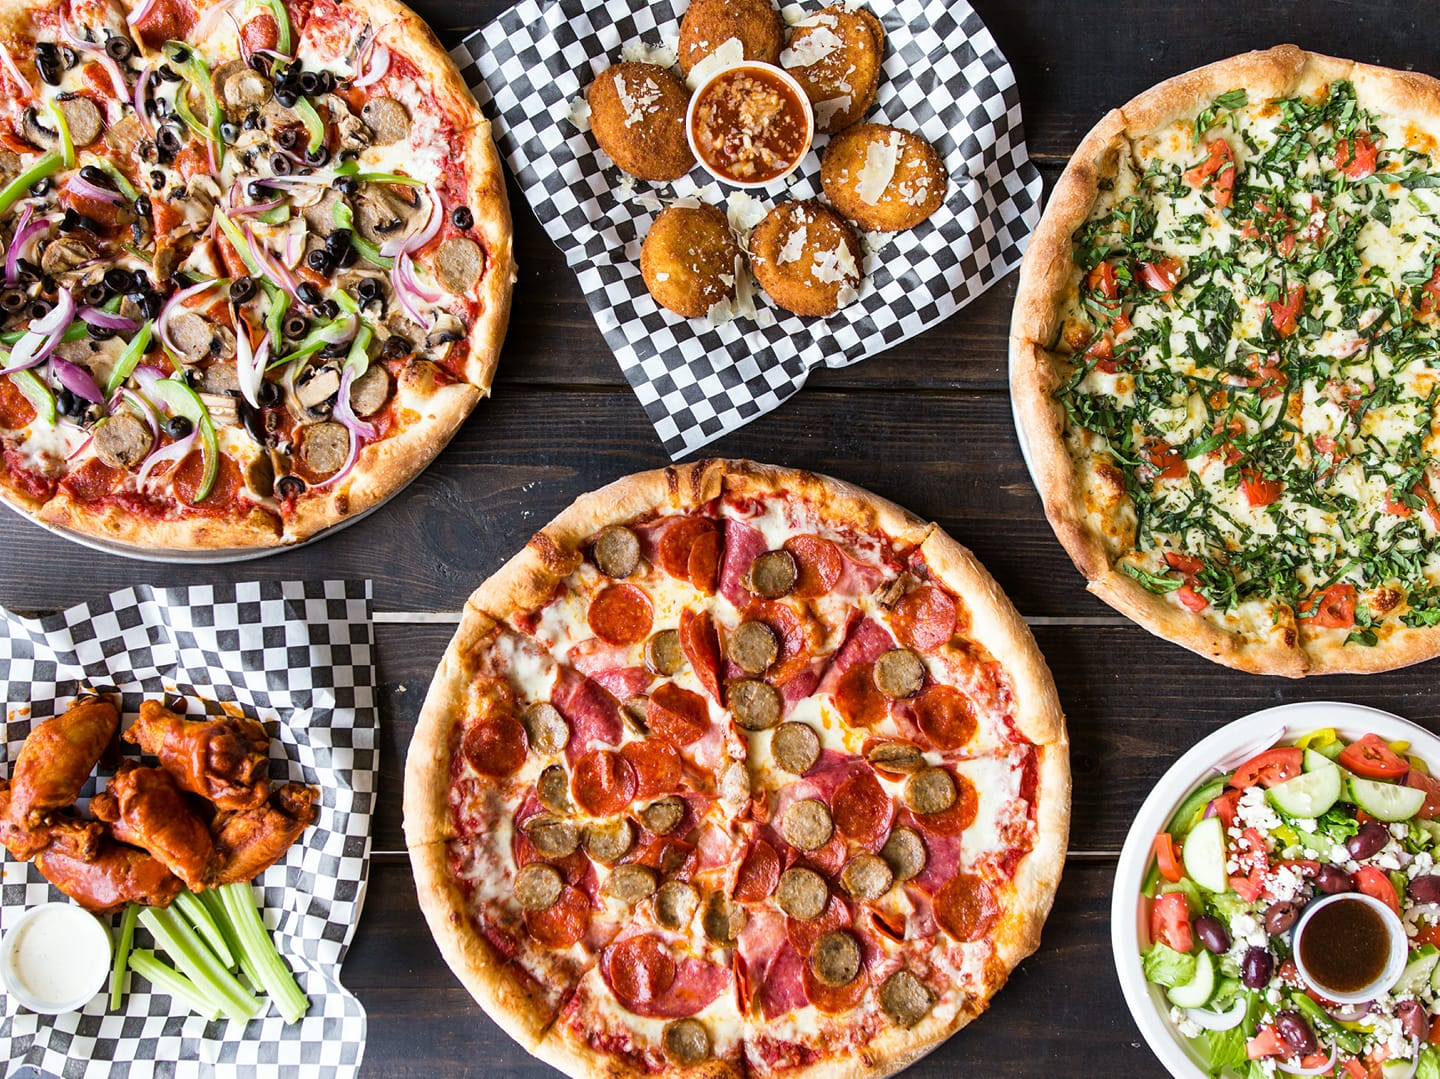 Pizza and sides from Brooklyn Pie Co. in San Marcos